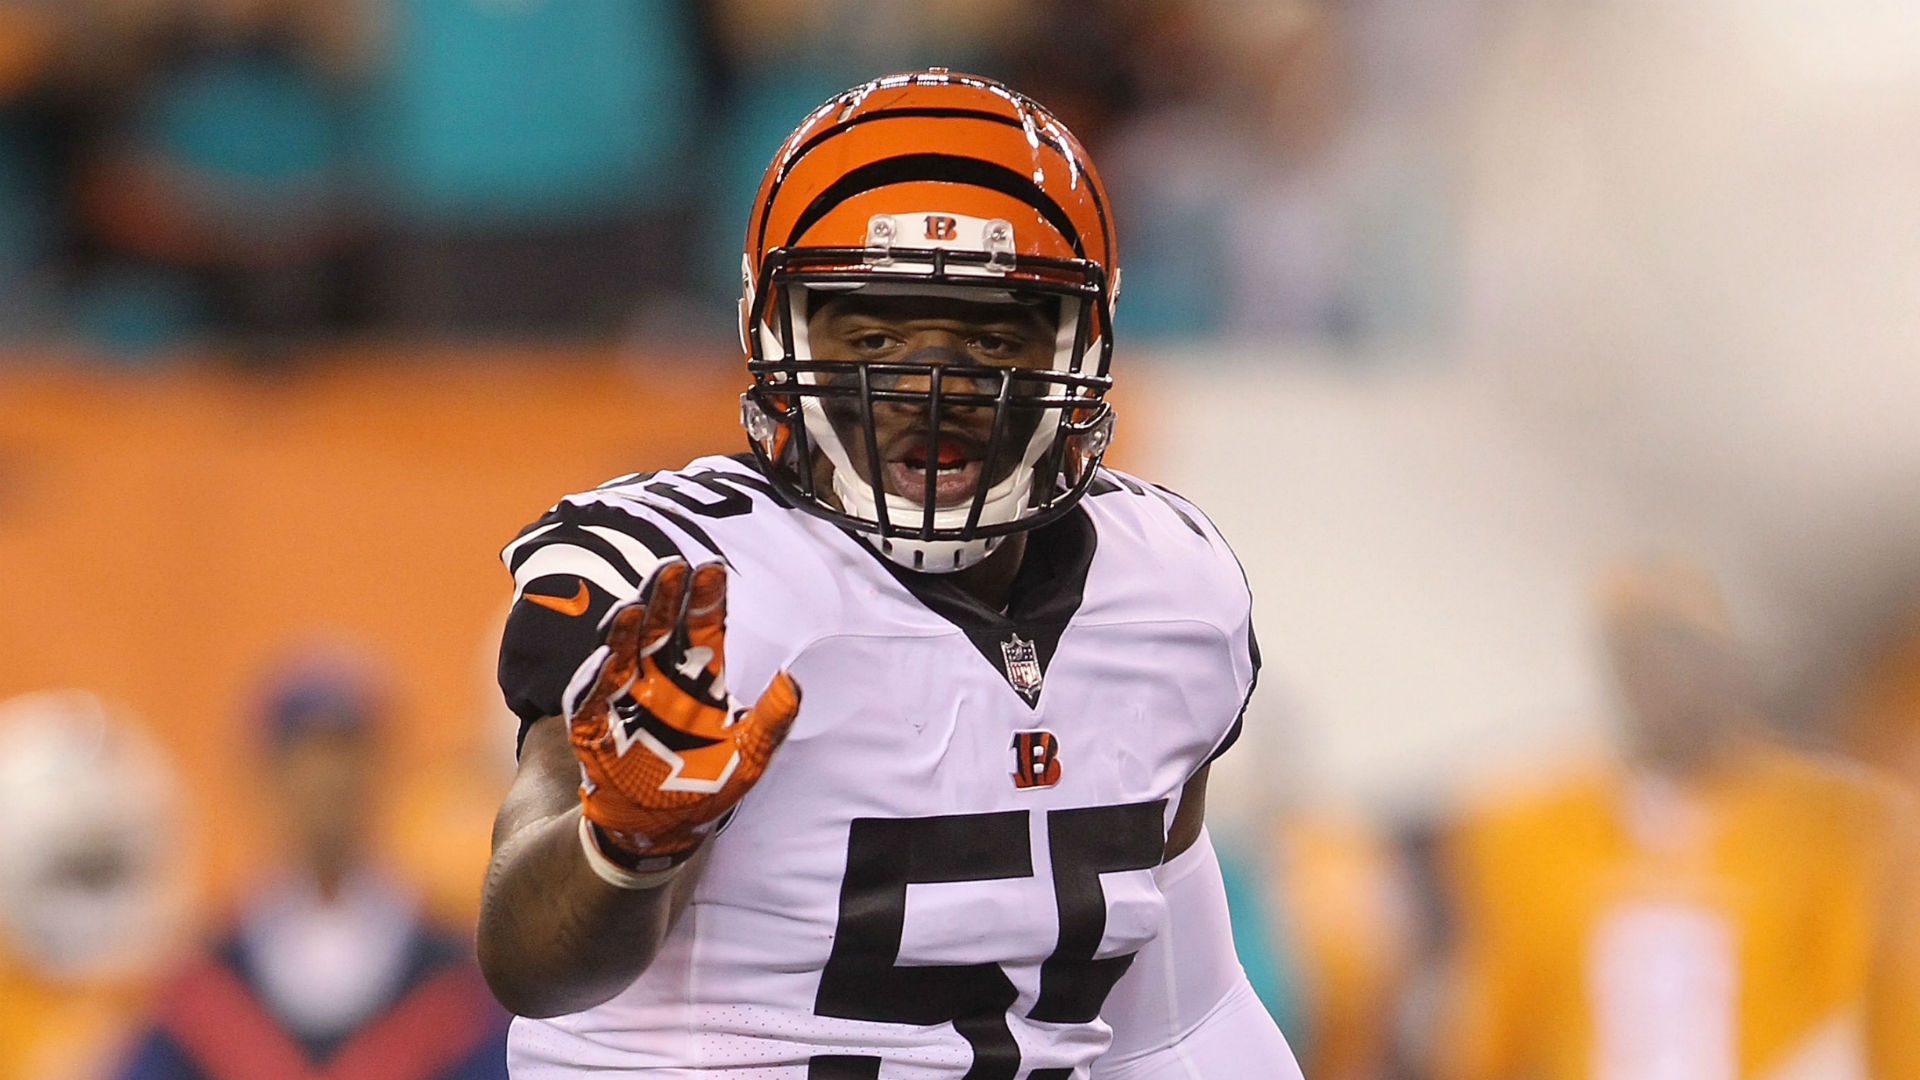 vontaze burfict color rush jersey